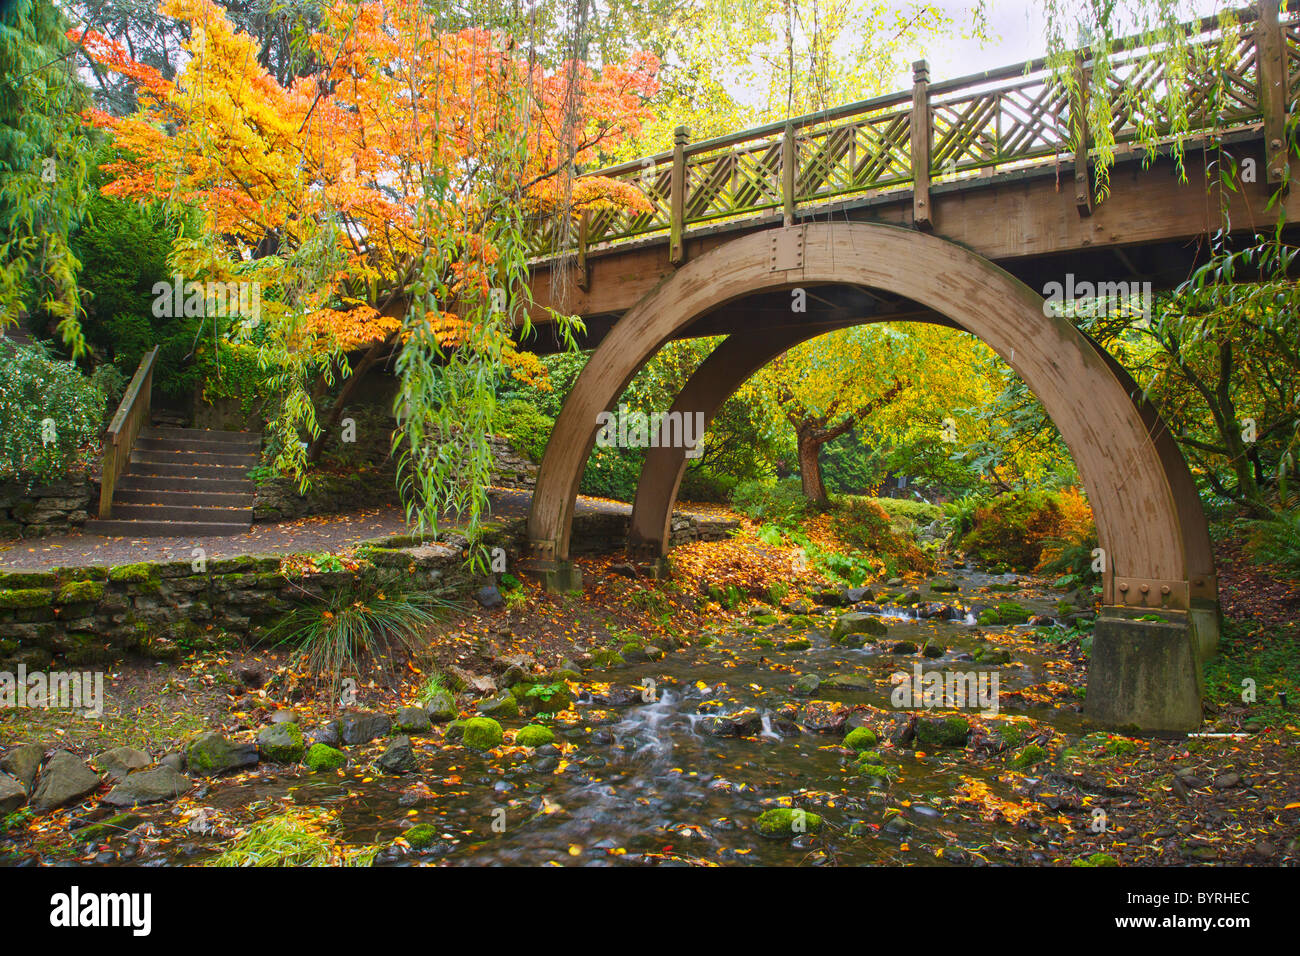 Ordinaire Autumn Colors In Crystal Springs Rhododendron Gardens And A Bridge Over A  Stream; Portland, Oregon, United States Of America